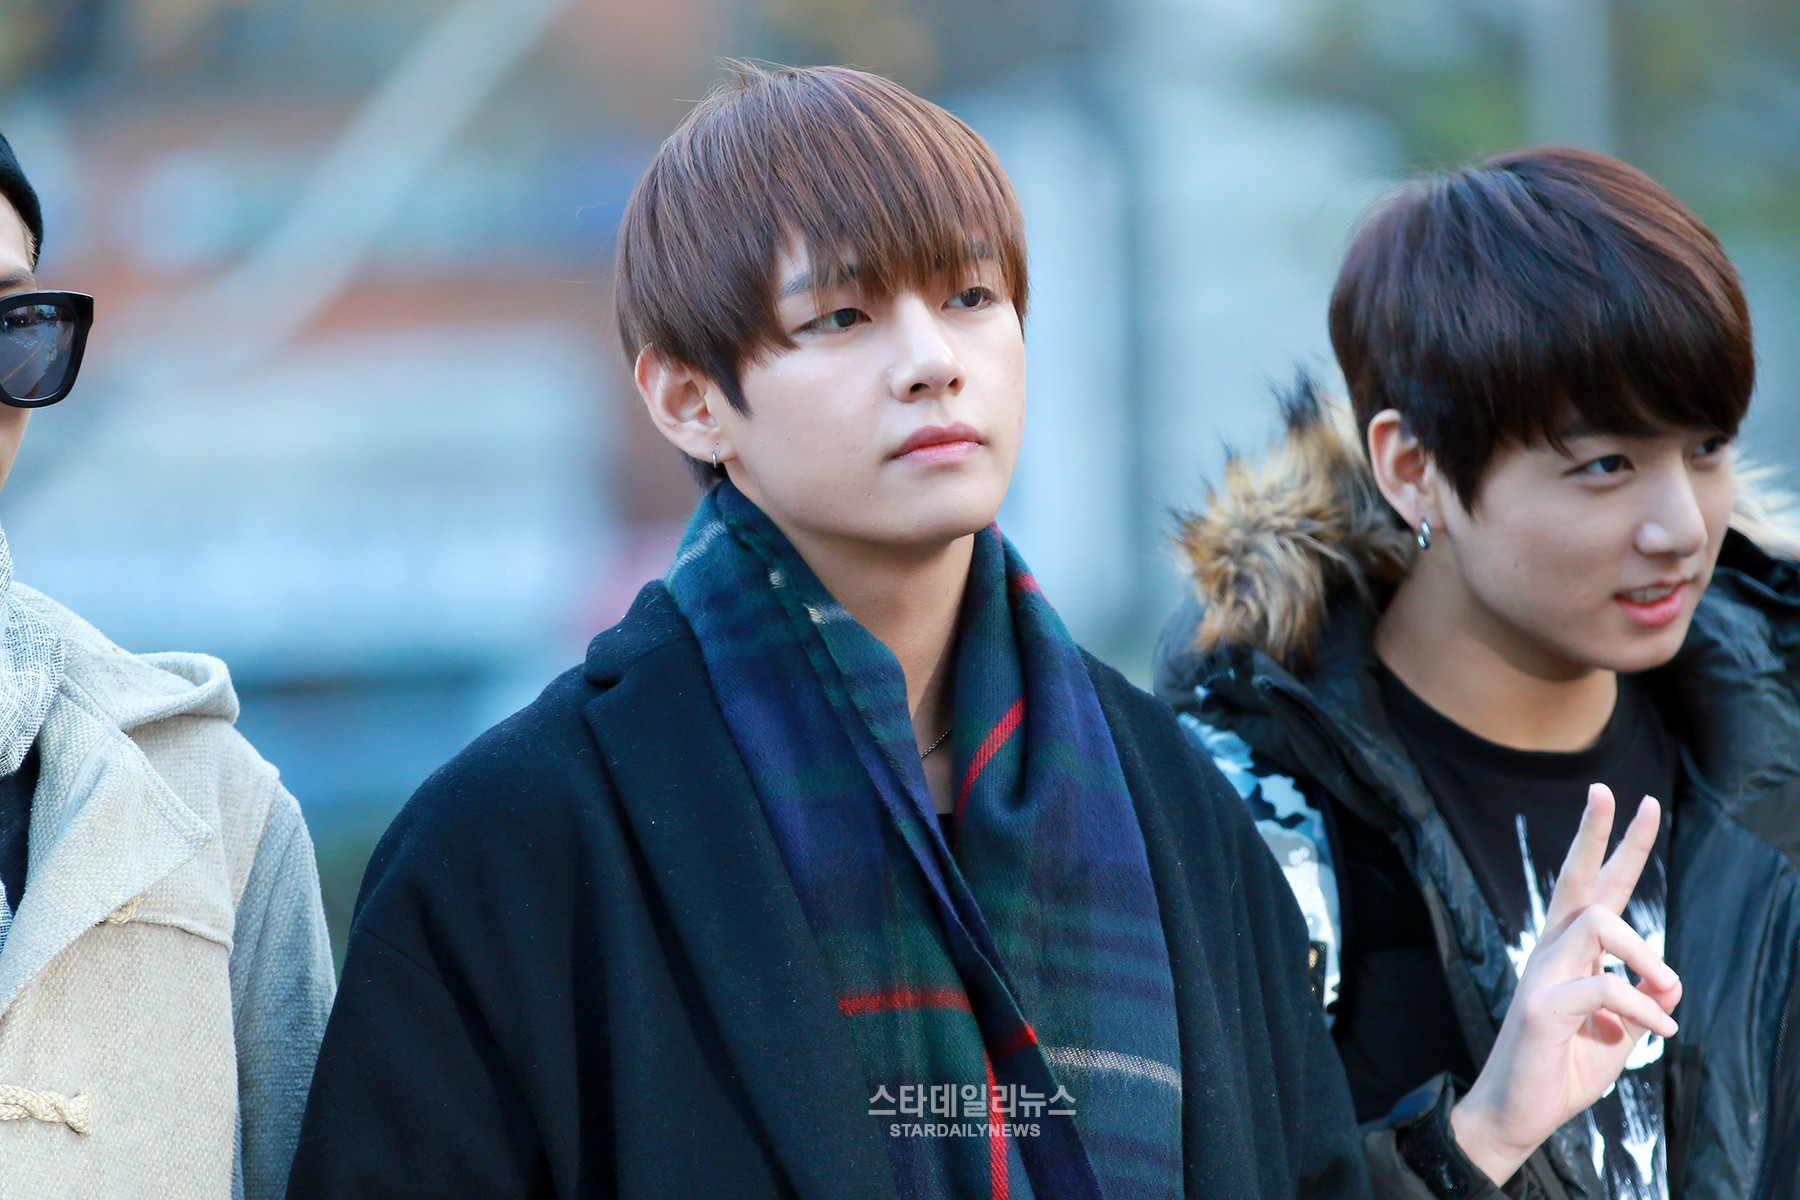 Update: BTS Member V Confirmed to Join Park Seo Joon and Go Ara in Historical Drama